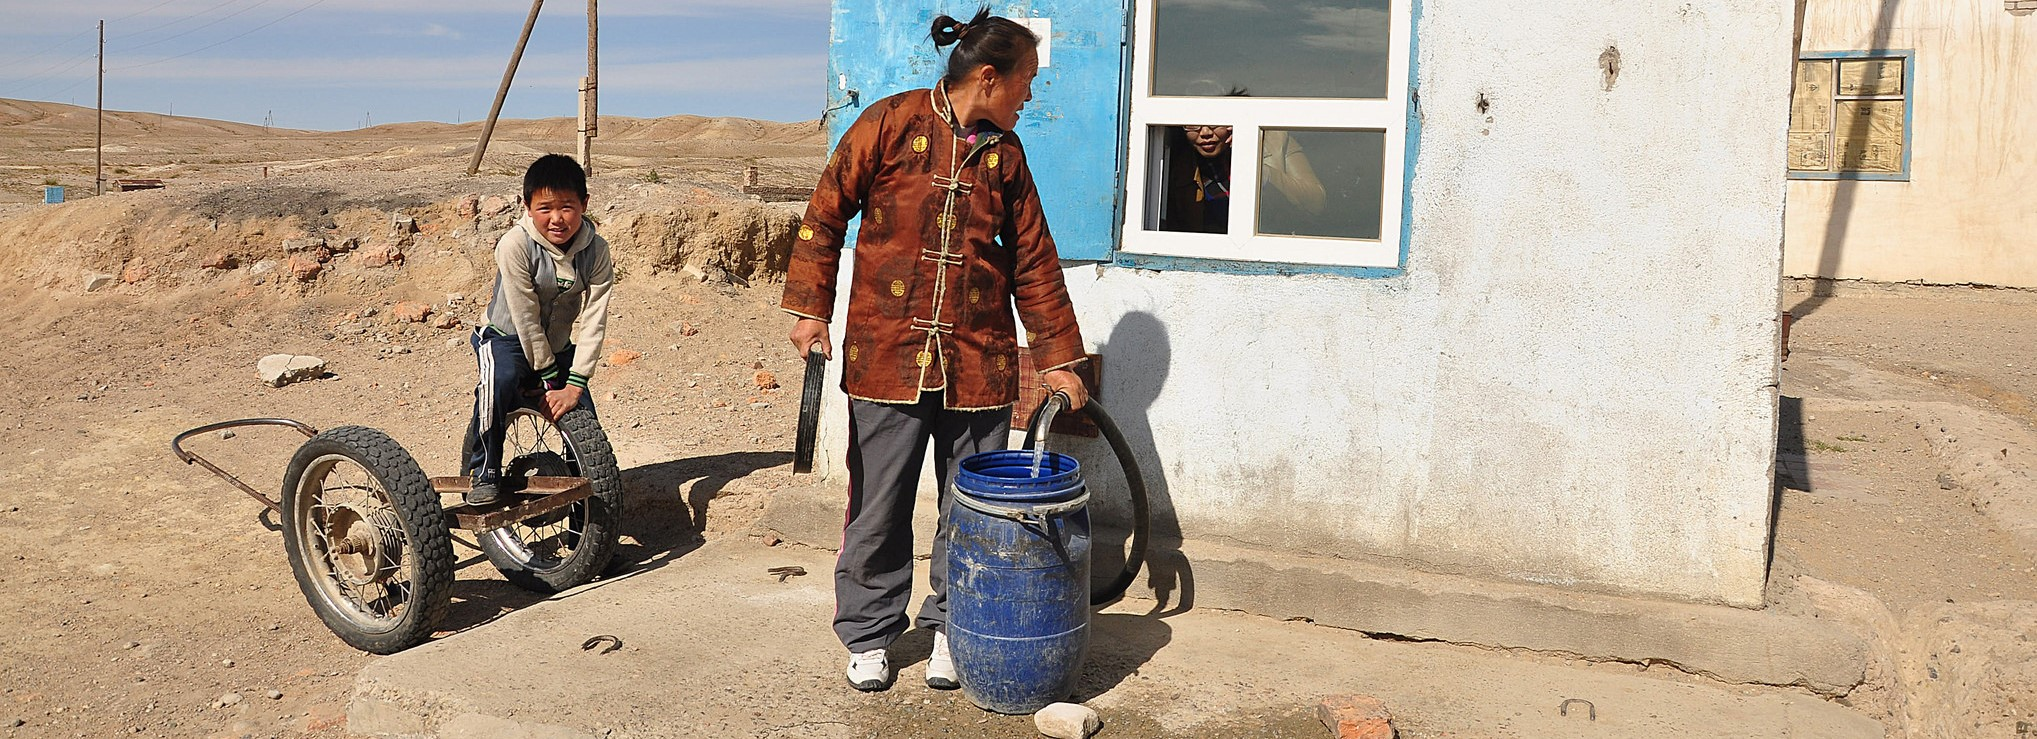 Villagers from Sainshand, Mongolia with water from an ADB supported kiosk. (Photo: Flickr/ADB)